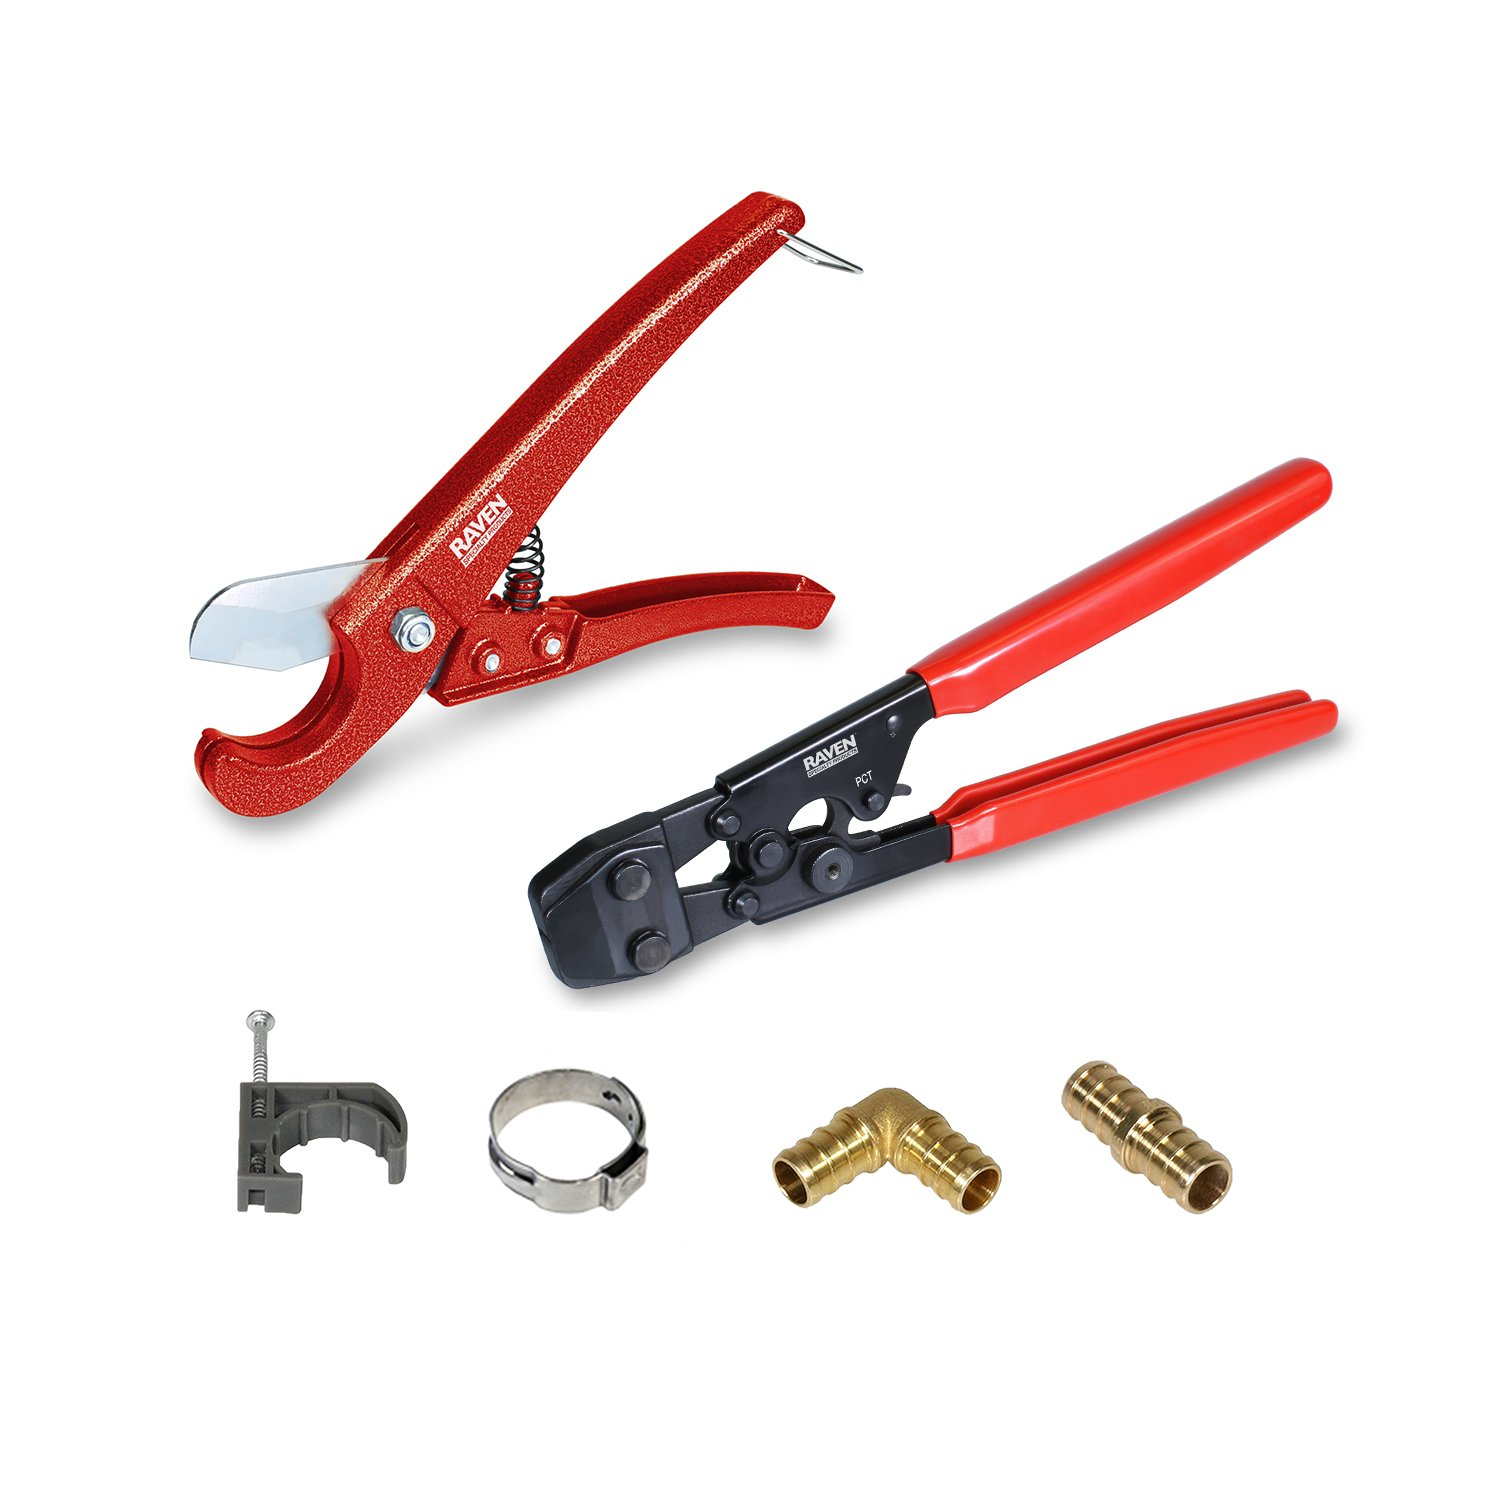 Pexflow PXKT1234 Pex Starter Kit - Crimper & Cutter Tool, Lead Free Brass Barbed 1/2-In + 3/4-In Elbow & Coupling Fitting Stainless Steel 1/2-In + 3/4-In Cinch Clamp,1/2-In + 3/4-In Half Clamp w/ Nail